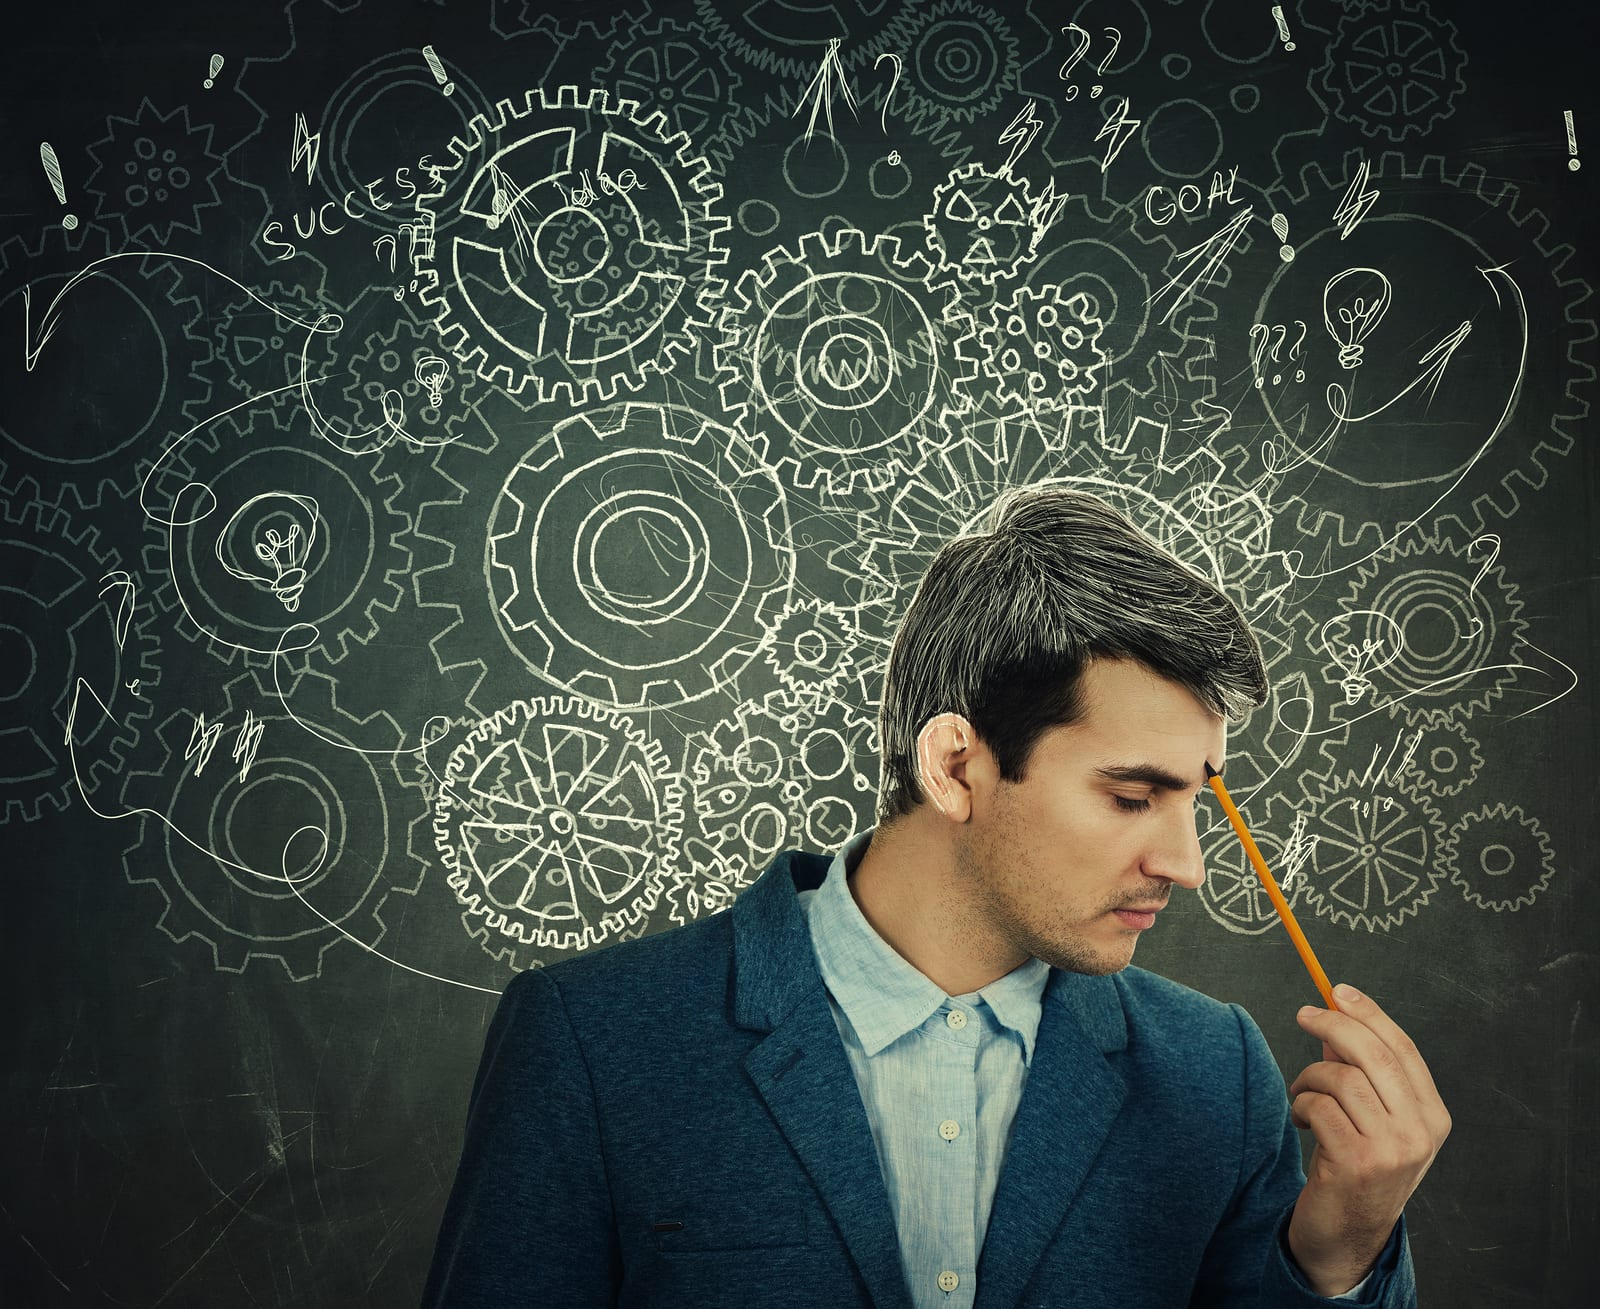 Hard thinking serious man over blackboard background gear brain arrows and mess as thoughts. Concept for mental, psychological development.